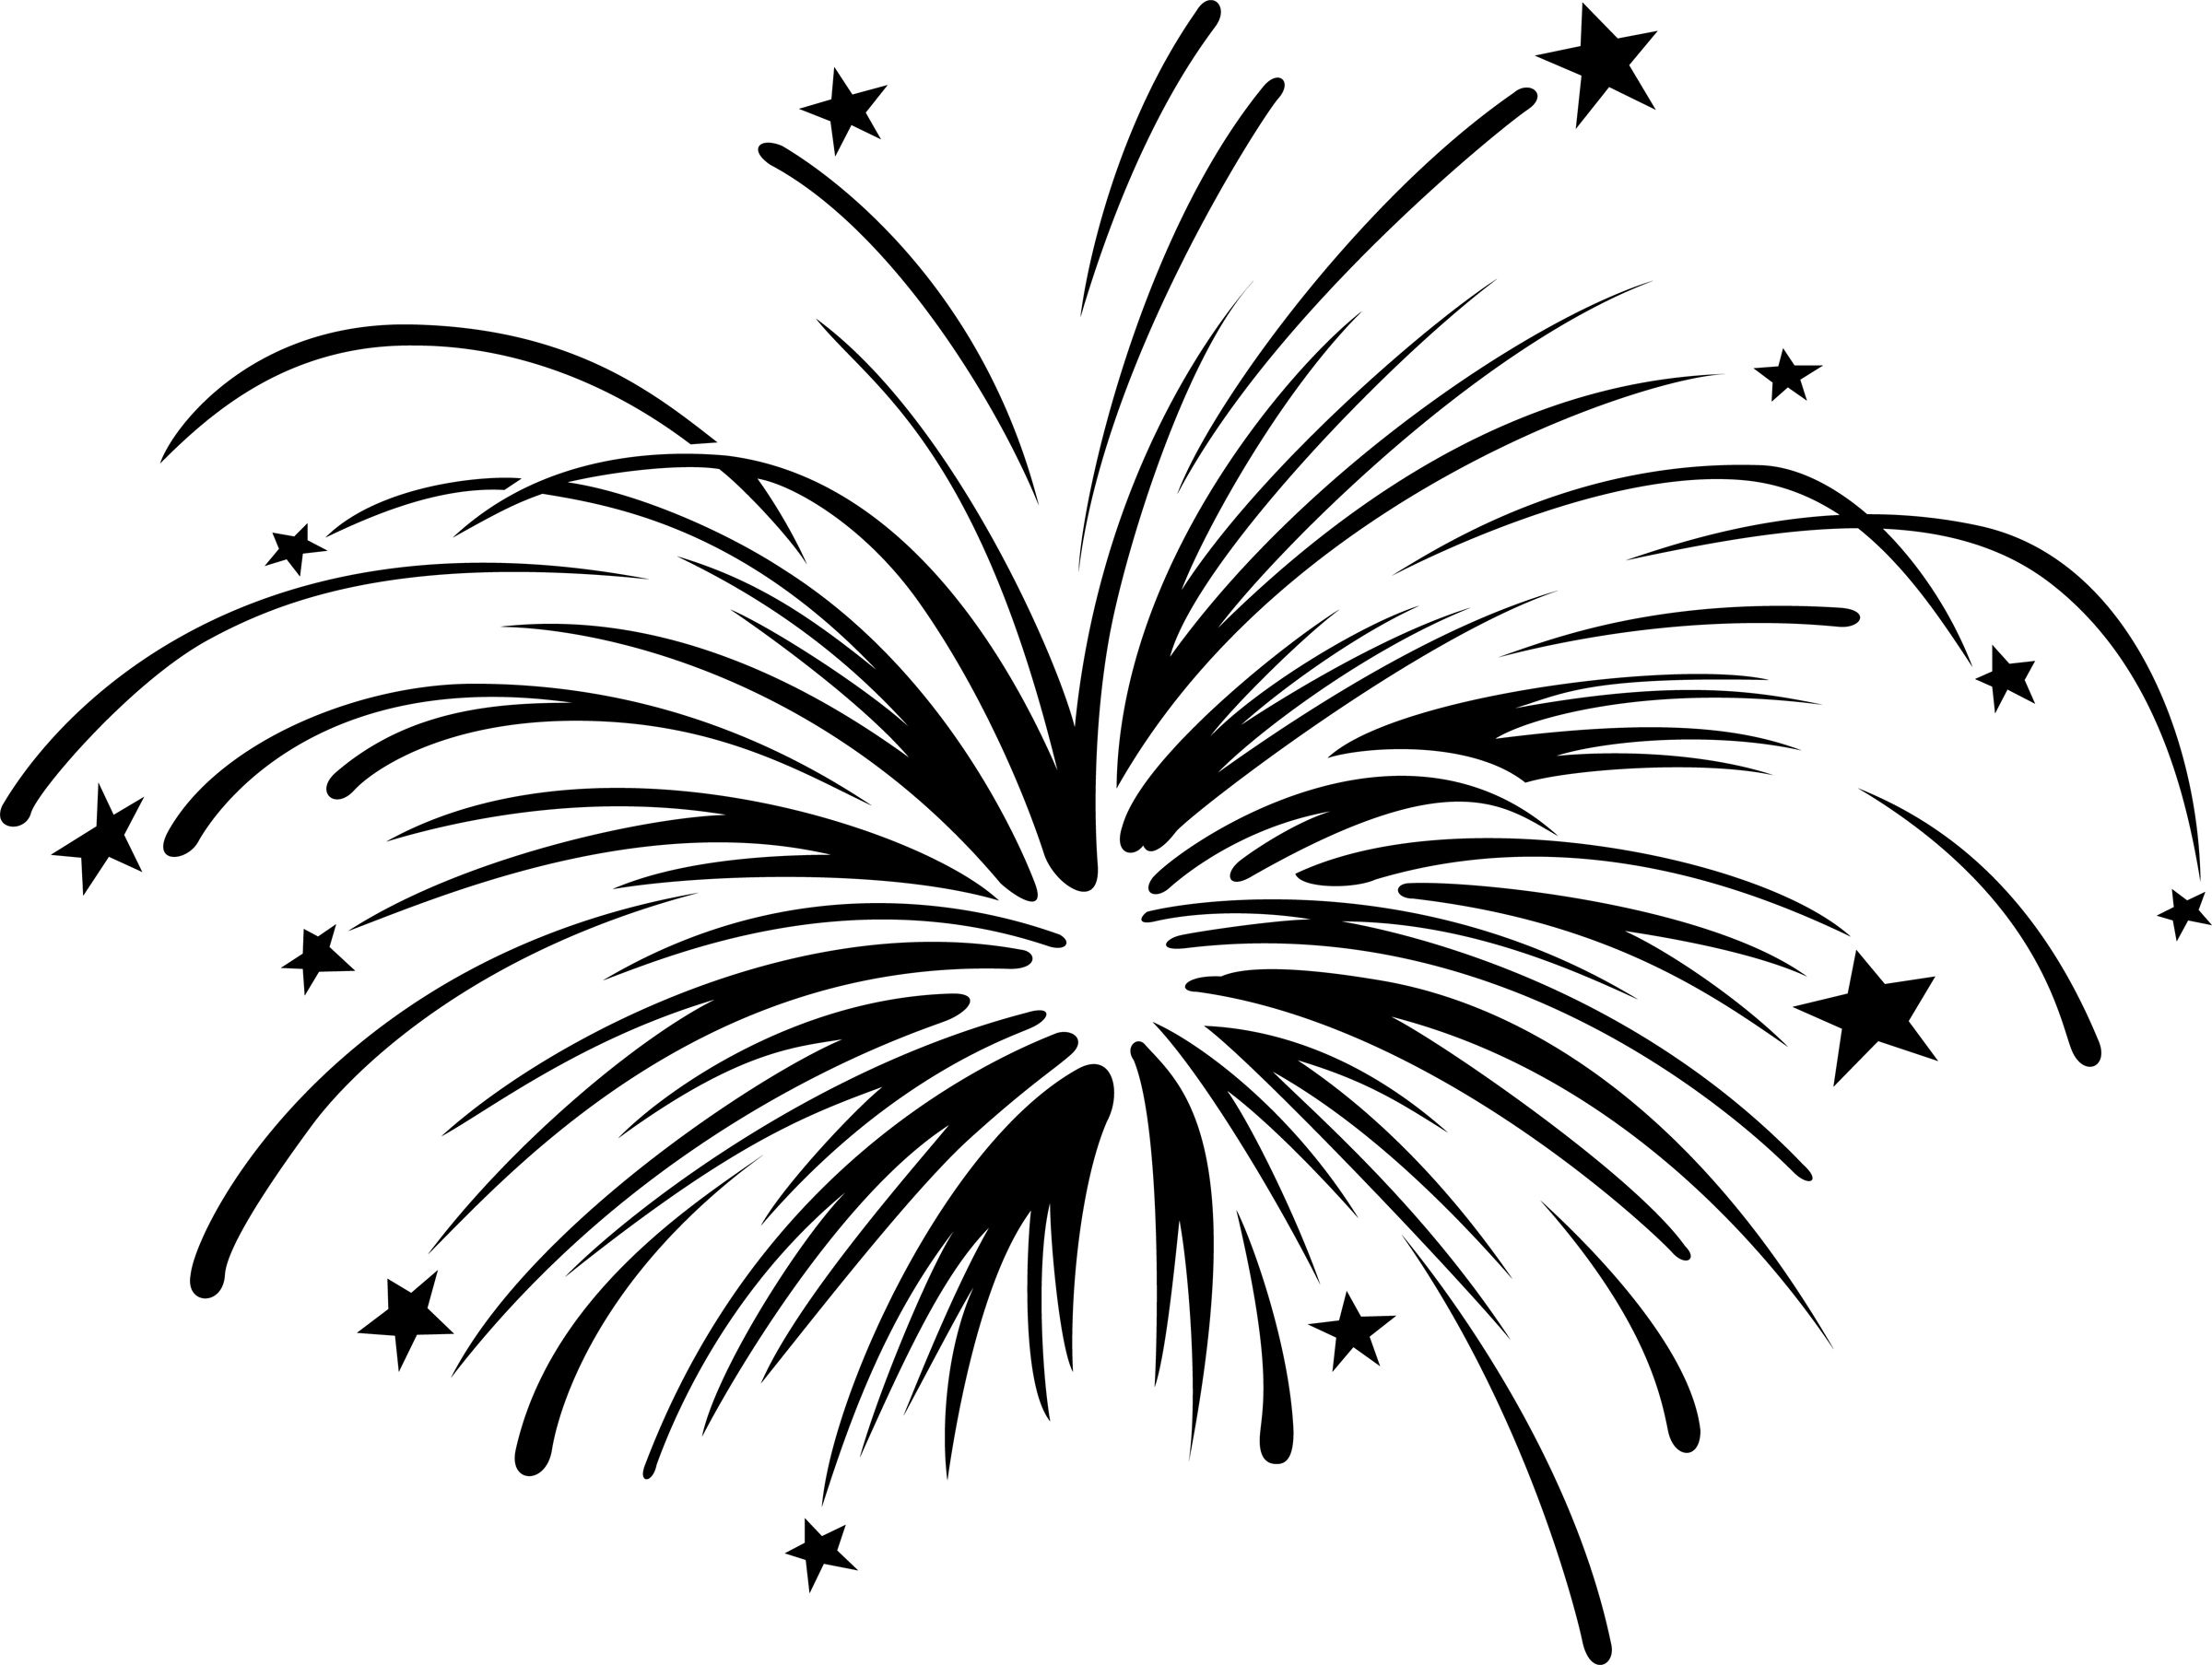 fireworks clipart with animation clipart panda free clipart rh pinterest com animated fireworks clipart free free animated fireworks clipart for powerpoint